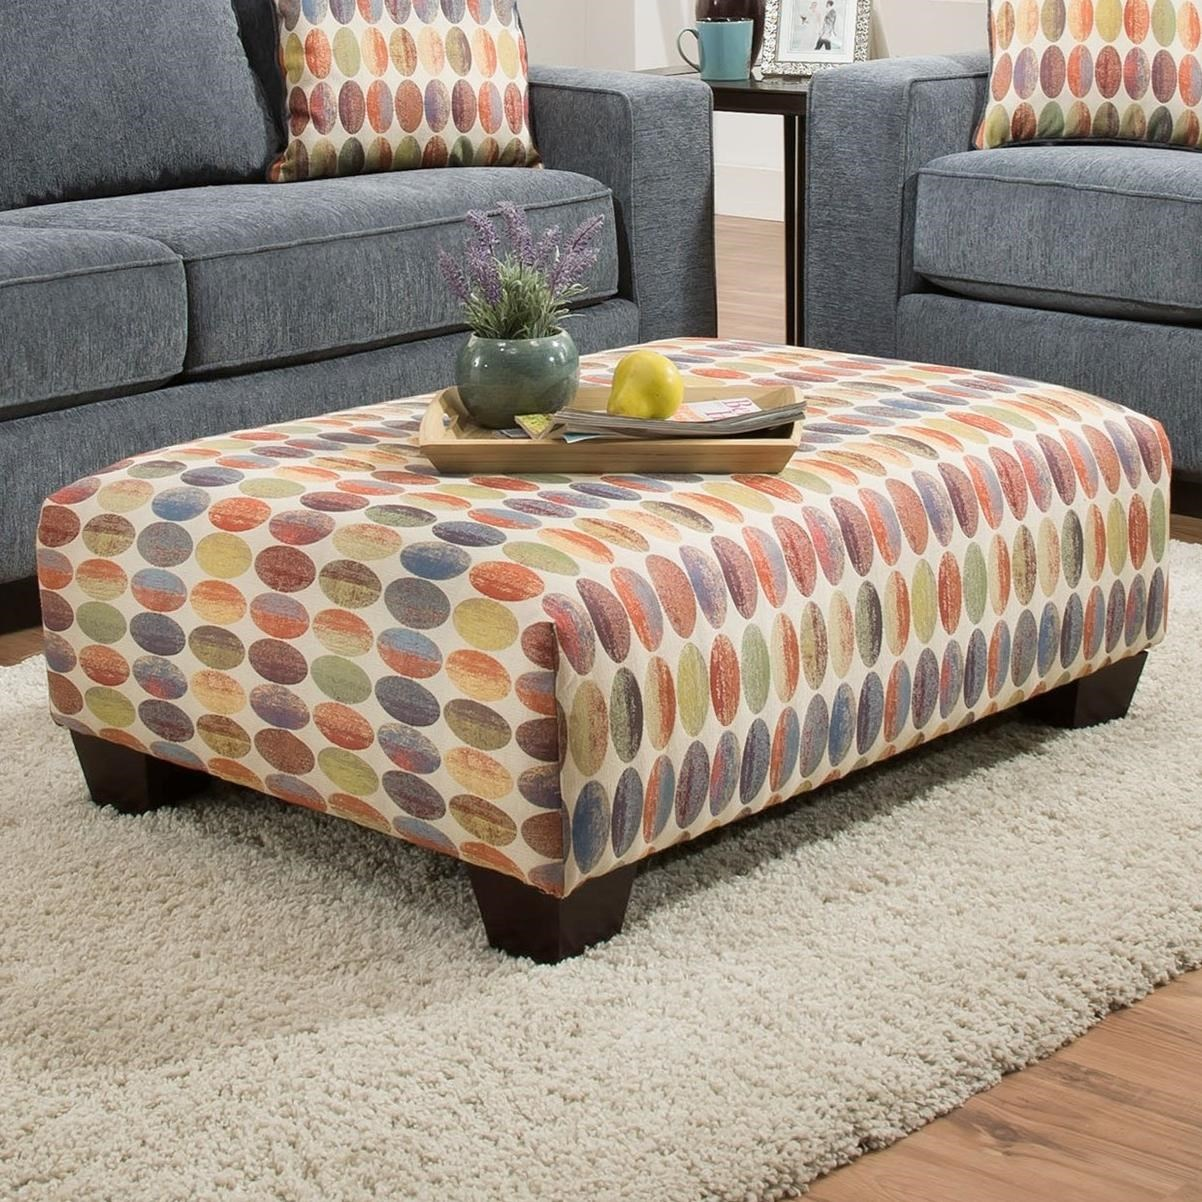 Colorful Ottoman Coffee Table Albany 451 Accent Ottoman In Colorful Geometric Pattern A1